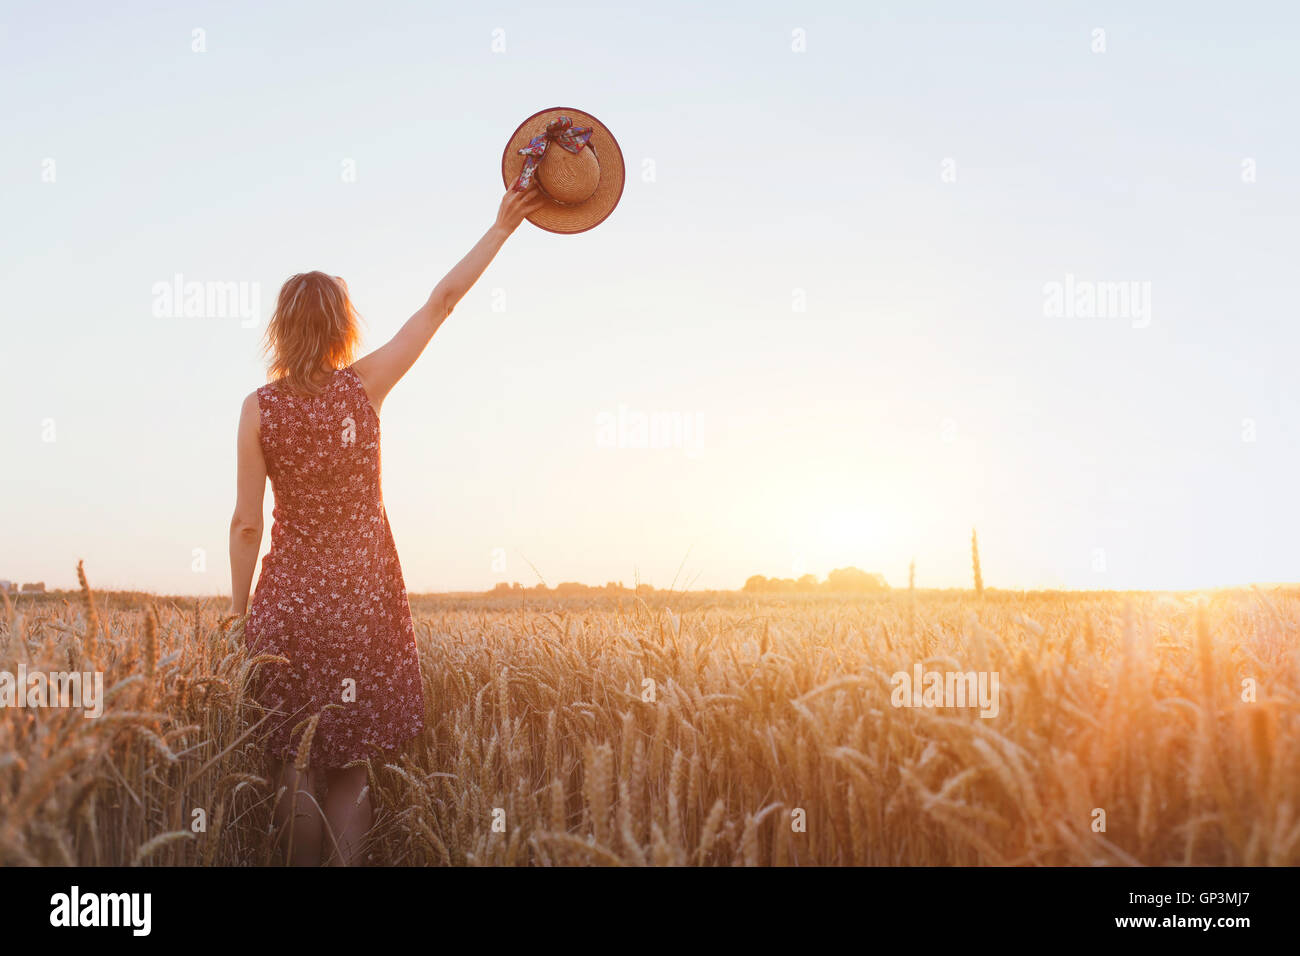 goodbye or parting background, farewell, woman waving hand in the field - Stock Image